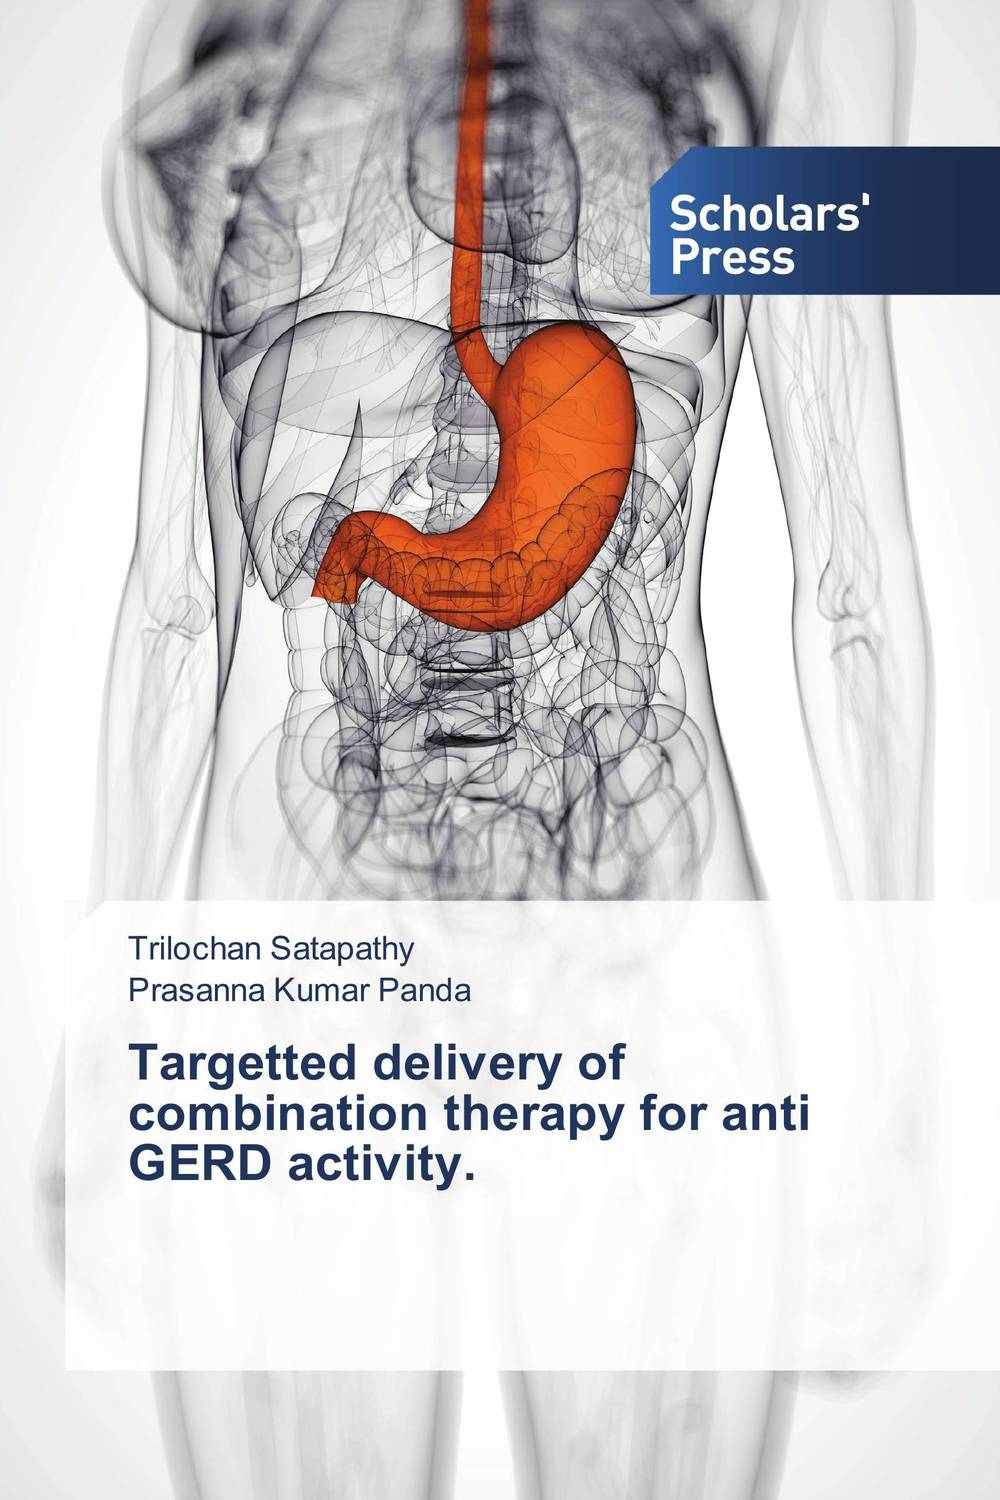 Targetted delivery of combination therapy for anti GERD activity ewigstein gerd 60kf бежевый